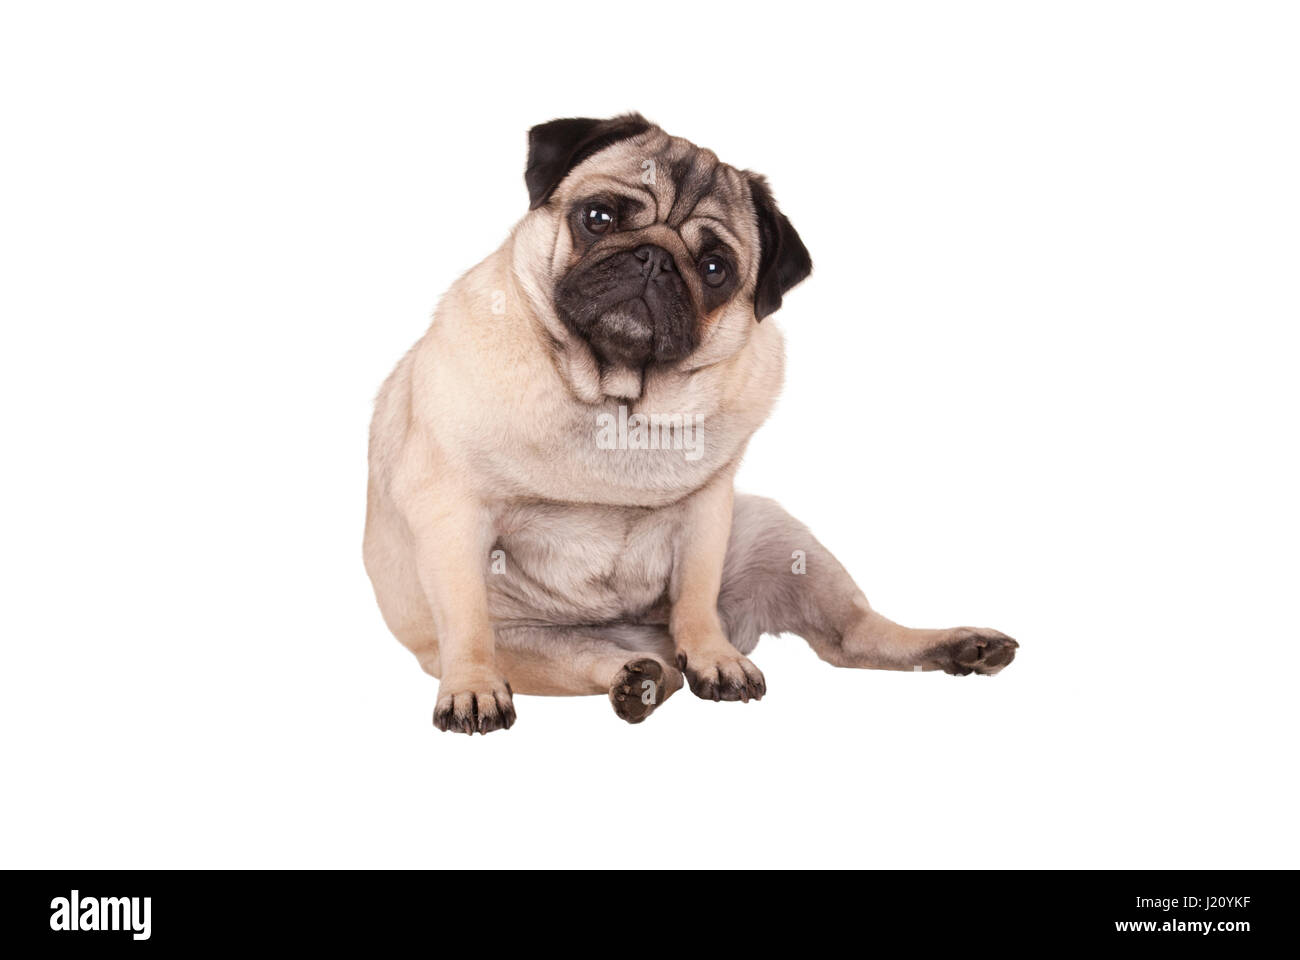 adorable cute pug puppy dog sitting down, isolated on white background Stock Photo